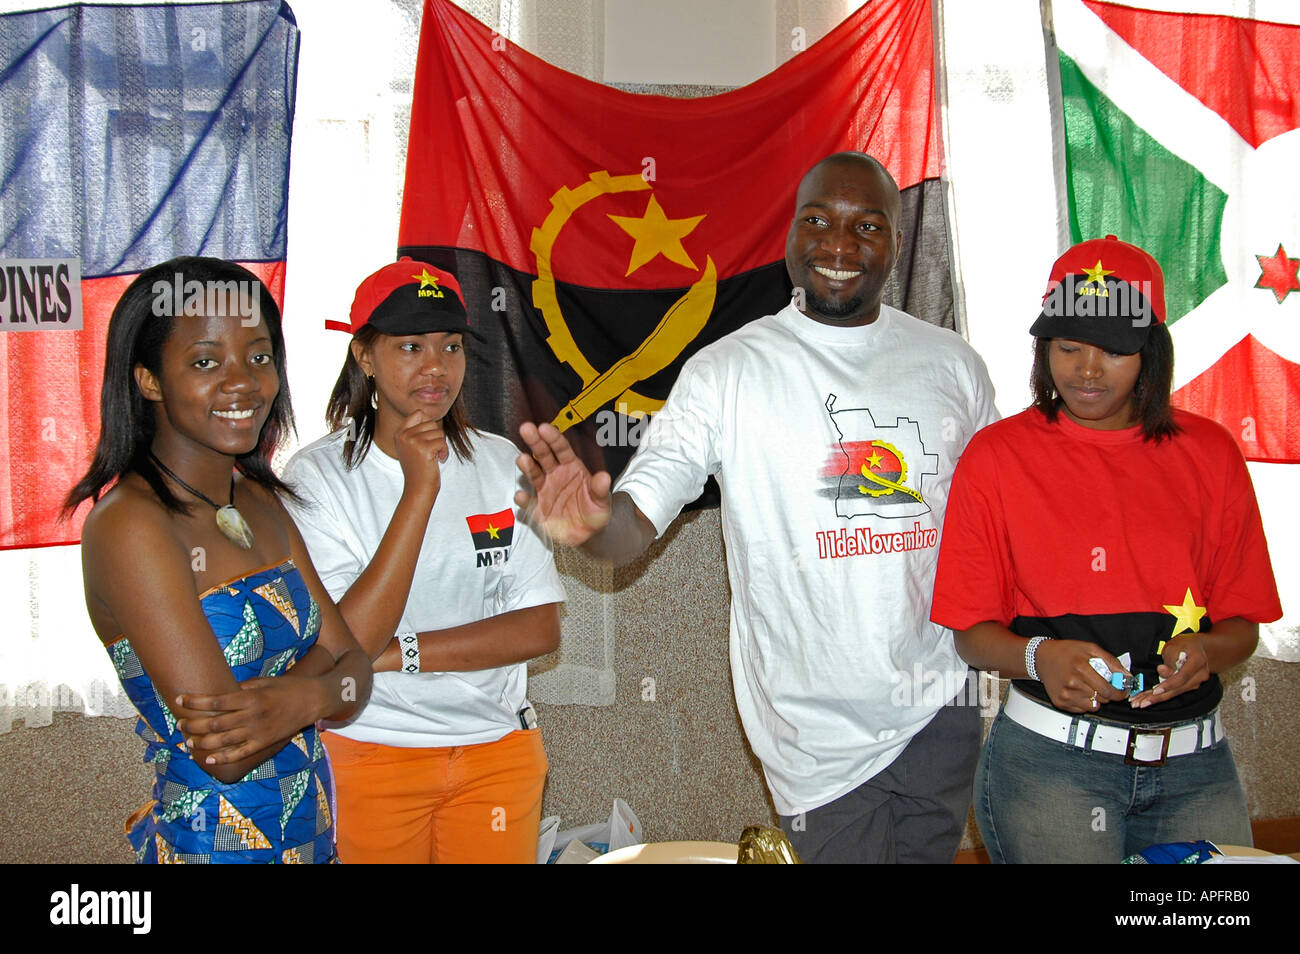 Angolan students celebrating their culture in South Africa - Stock Image